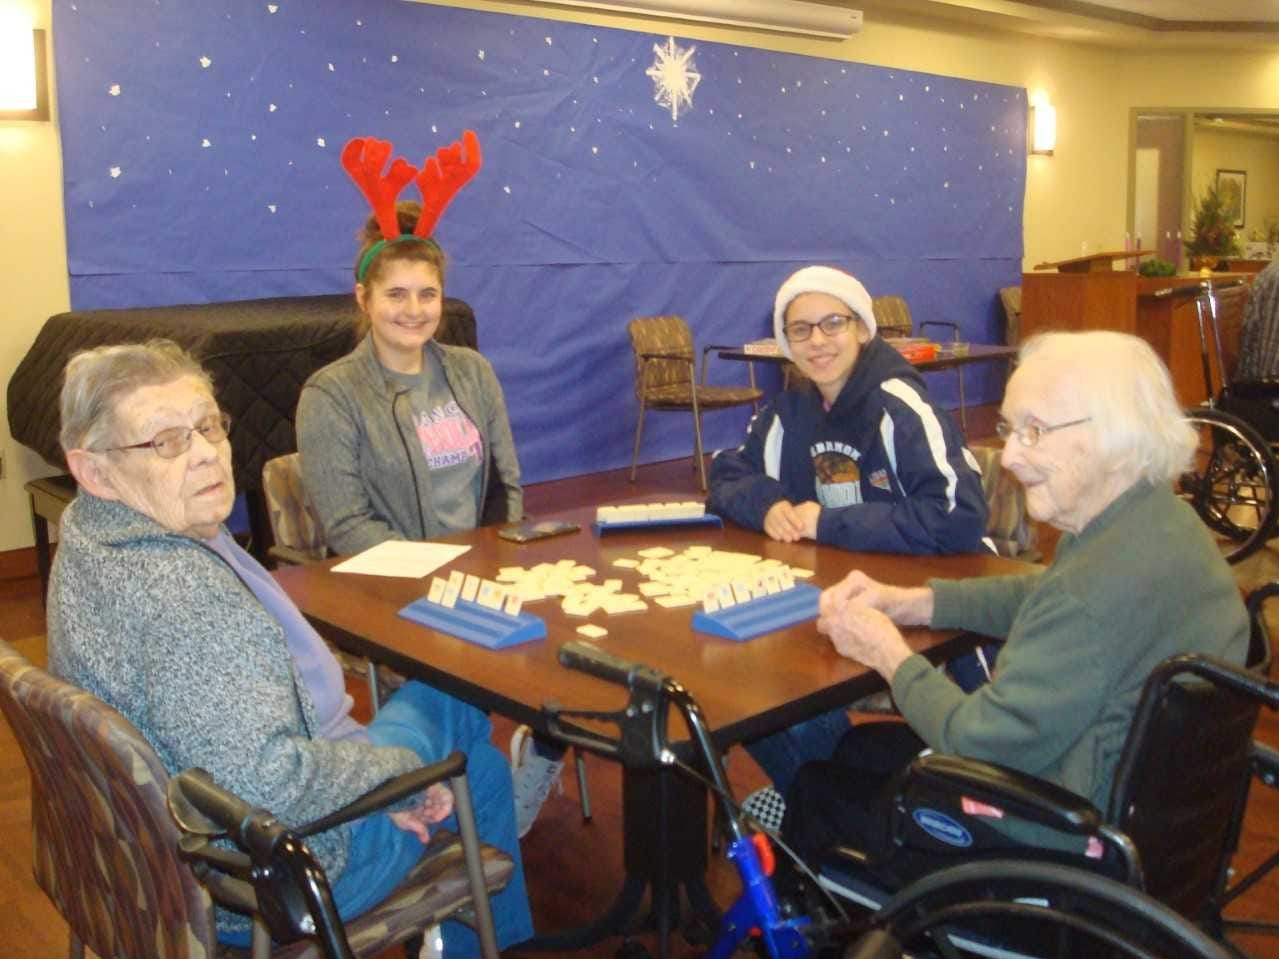 Lebanon Catholic girls basketball players recently spread some holiday cheer to residents at Cornwall Manor